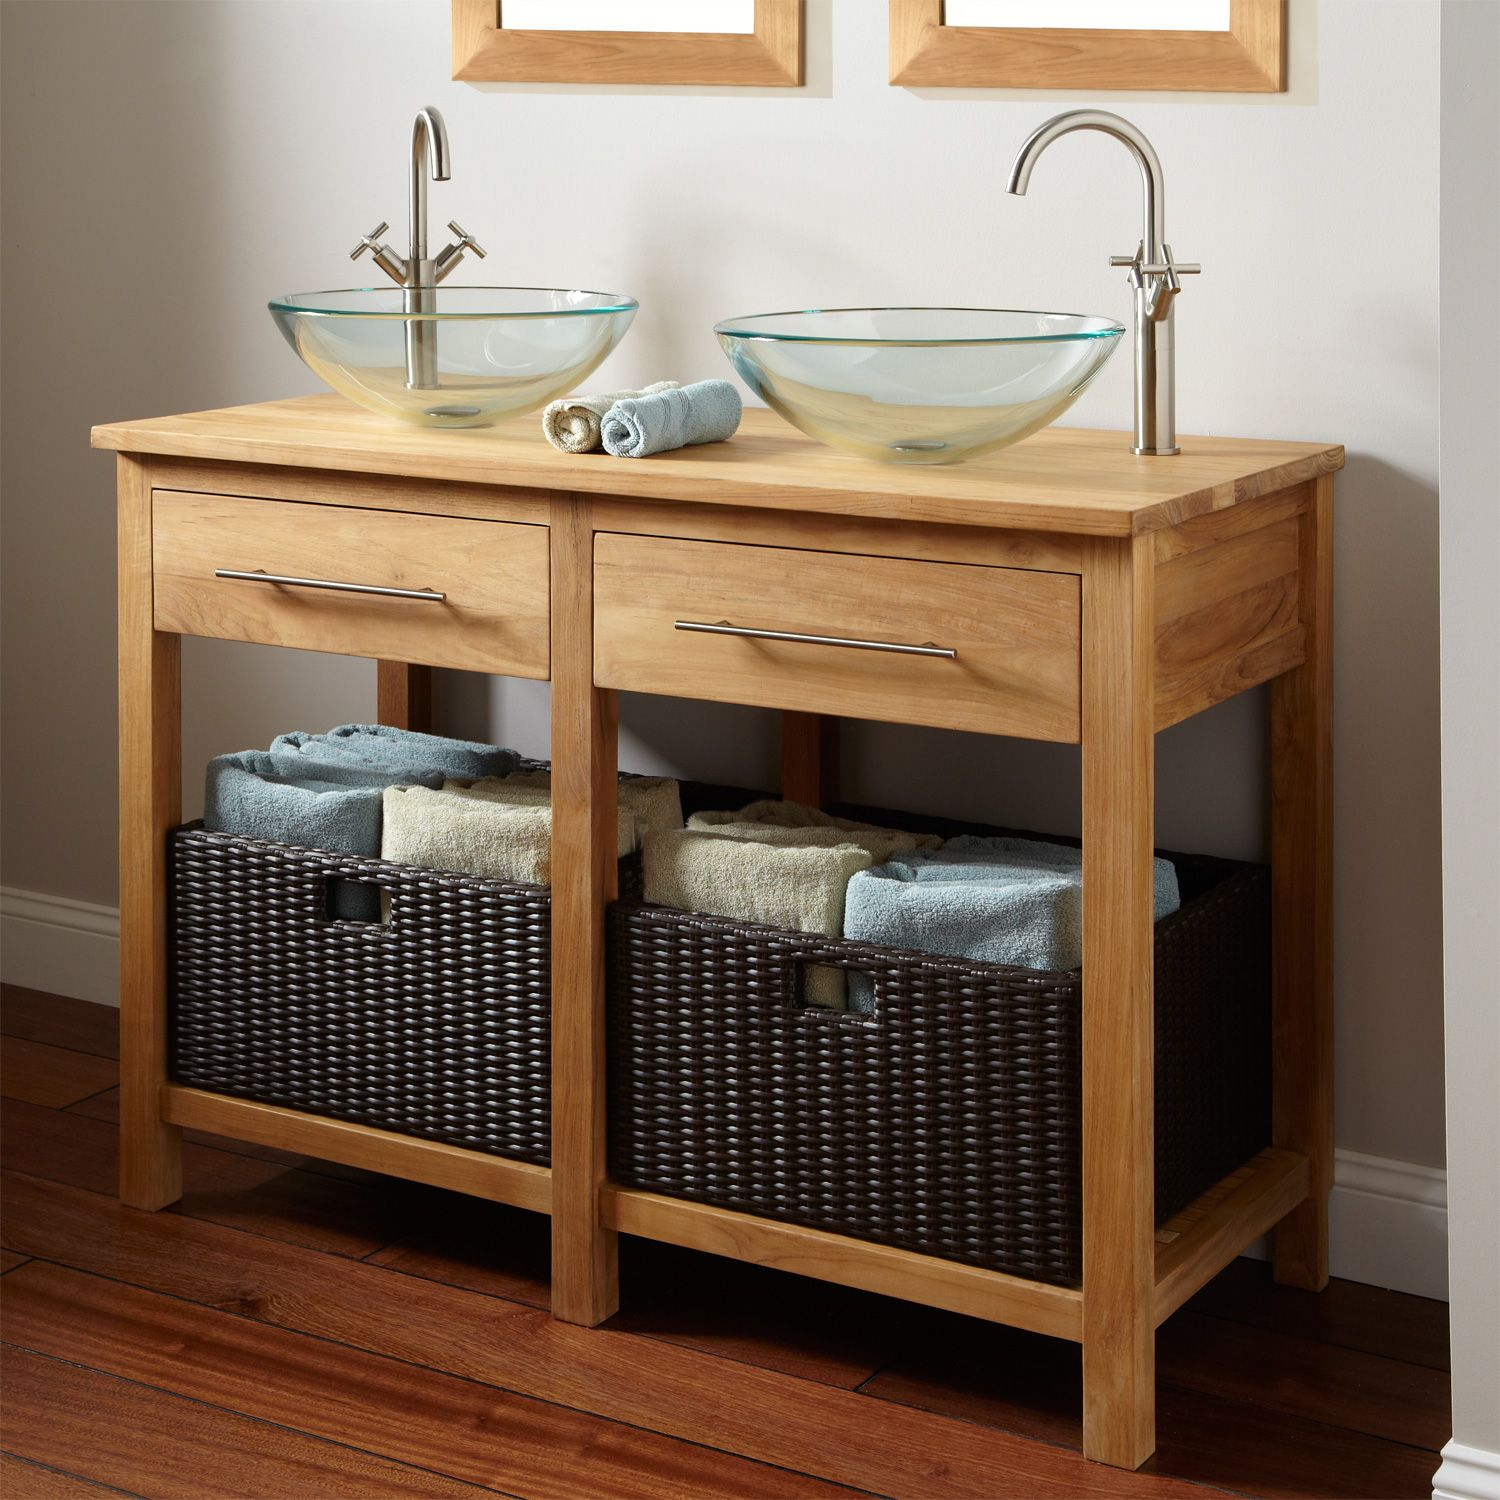 Rustic Bathroom Double Vanity diy bathroom vanity – save moneymaking your own | diy bathroom